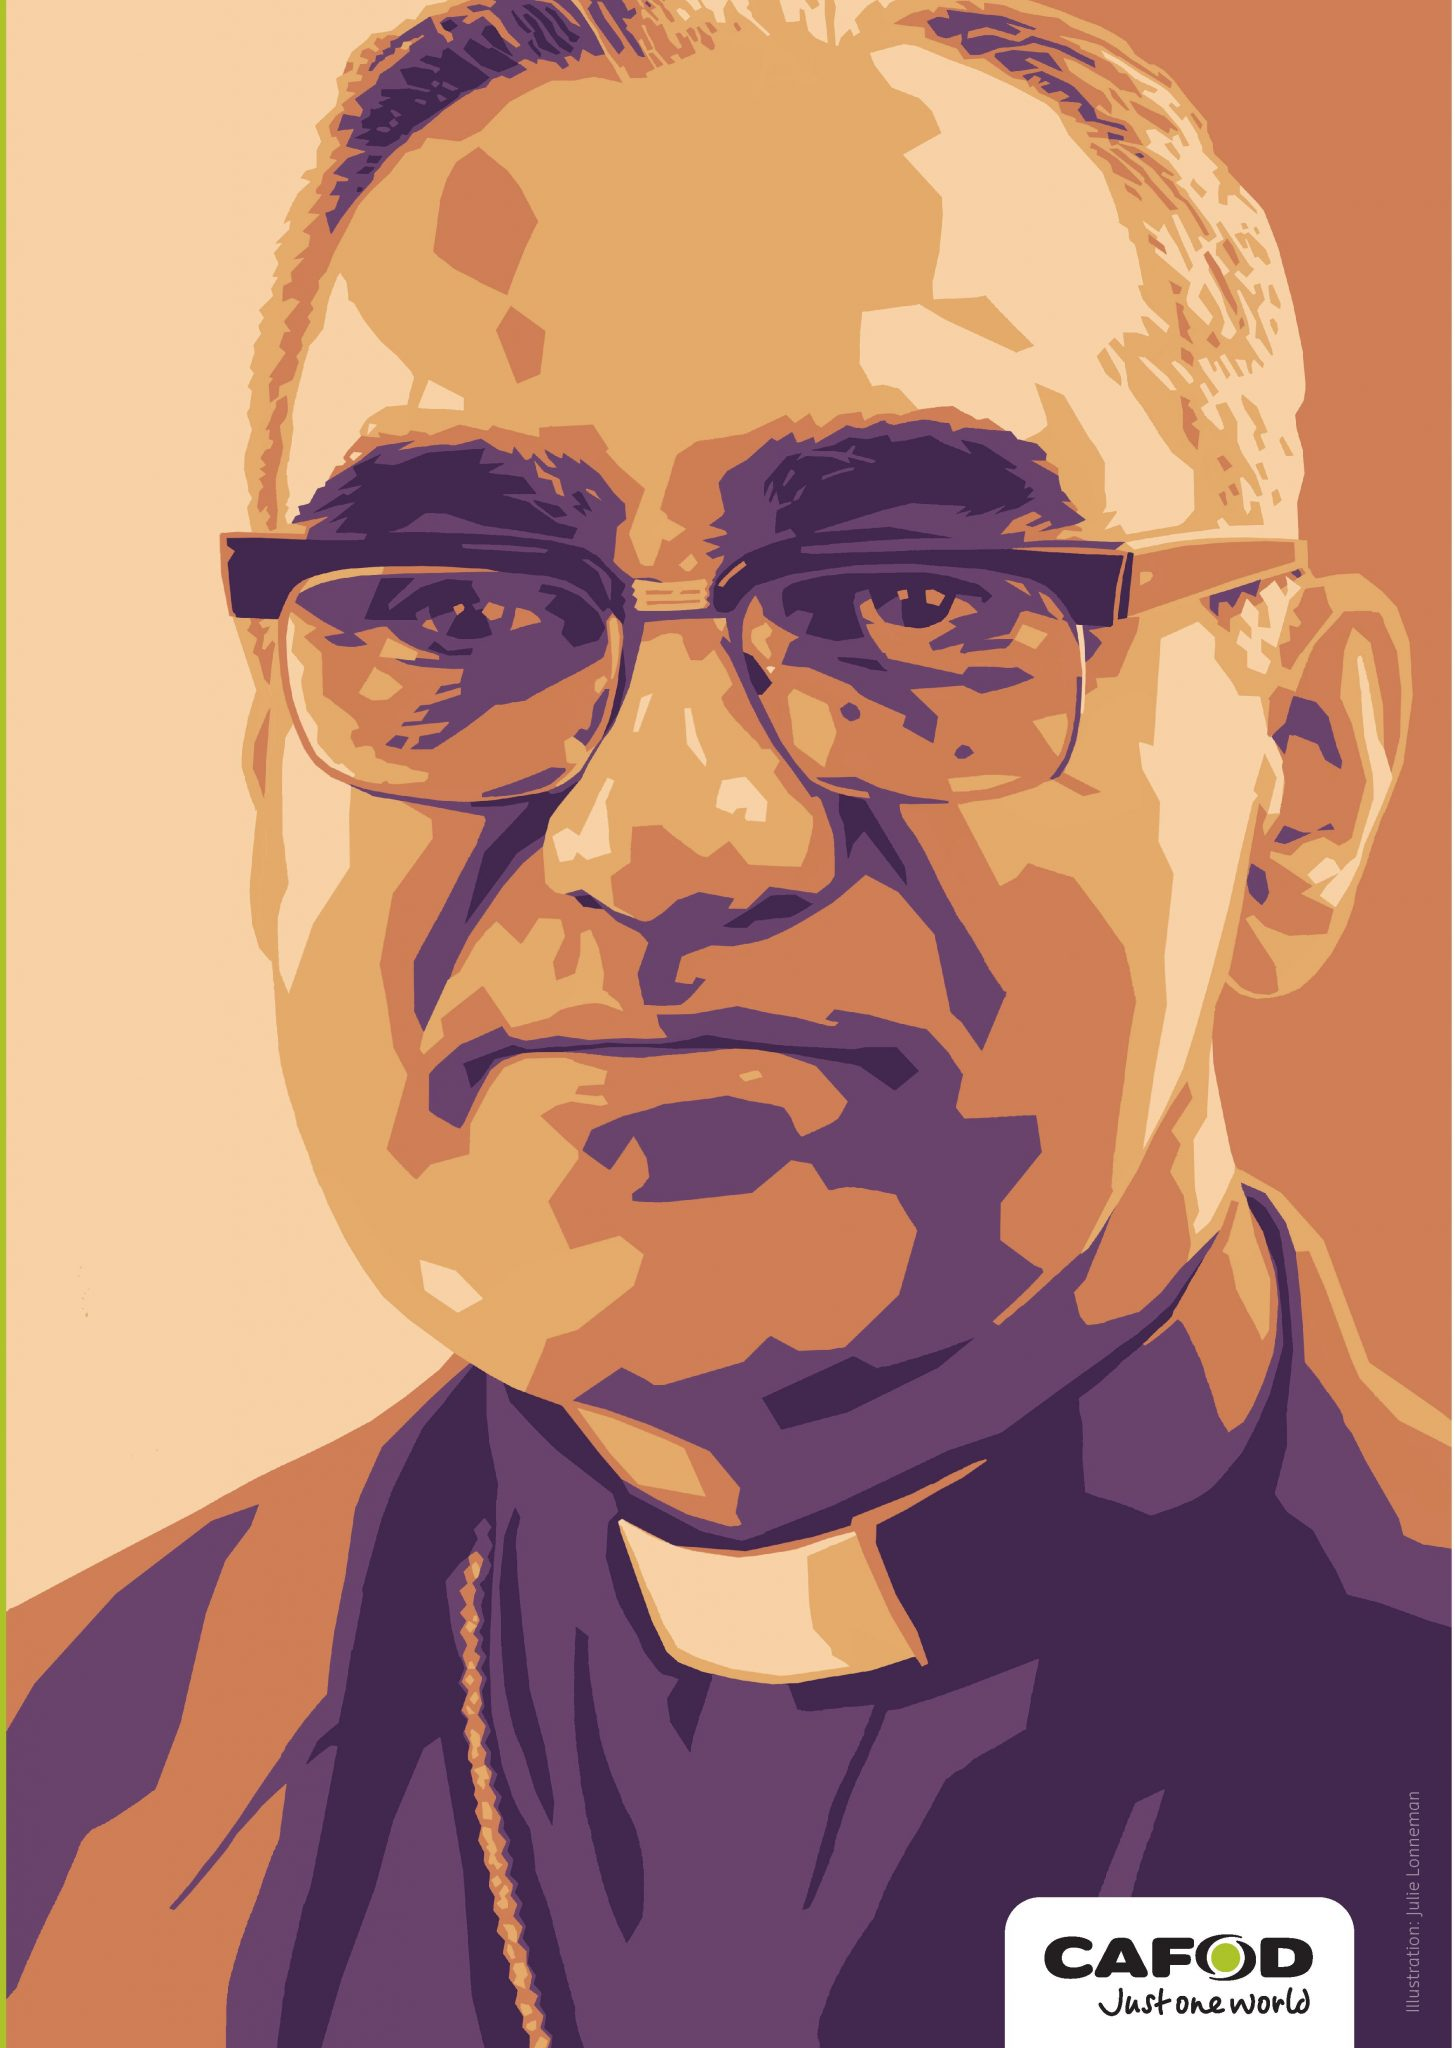 essays on oscar romero Oscar romero summary: essay consists of a discussion of the life of archbishop oscar romero romero is a true story about a catholic priest, archbishop oscar romero, who lived in el salvador during the political unrest in the 1980s.